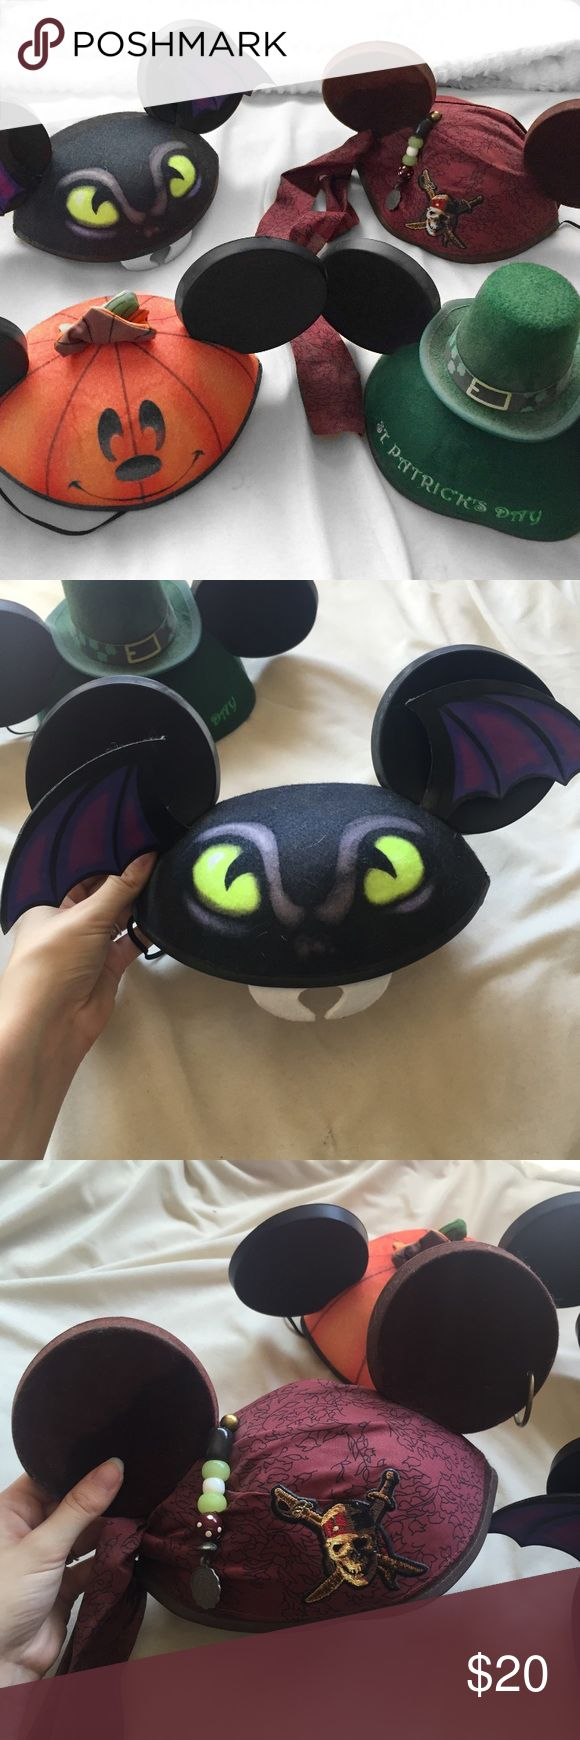 Set of 4 Themed Disney Mickey Ear Hats Includes 4 Disney Mickey hats • 1 Jack-o-lantern hat, 1 St. Patrick's Day hat, 1 Haunted Mansion hat with a bat with flapping wings, and 1 Jack Sparrow pirate hat • All will fit like a youth size except for the Jack Sparrow one, which is an adult size • Jack Sparrow hat has some wear and fading on one ear and the elastic band is stretched out. Minor fading on Jack-o-lantern hat Disney Accessories Hats